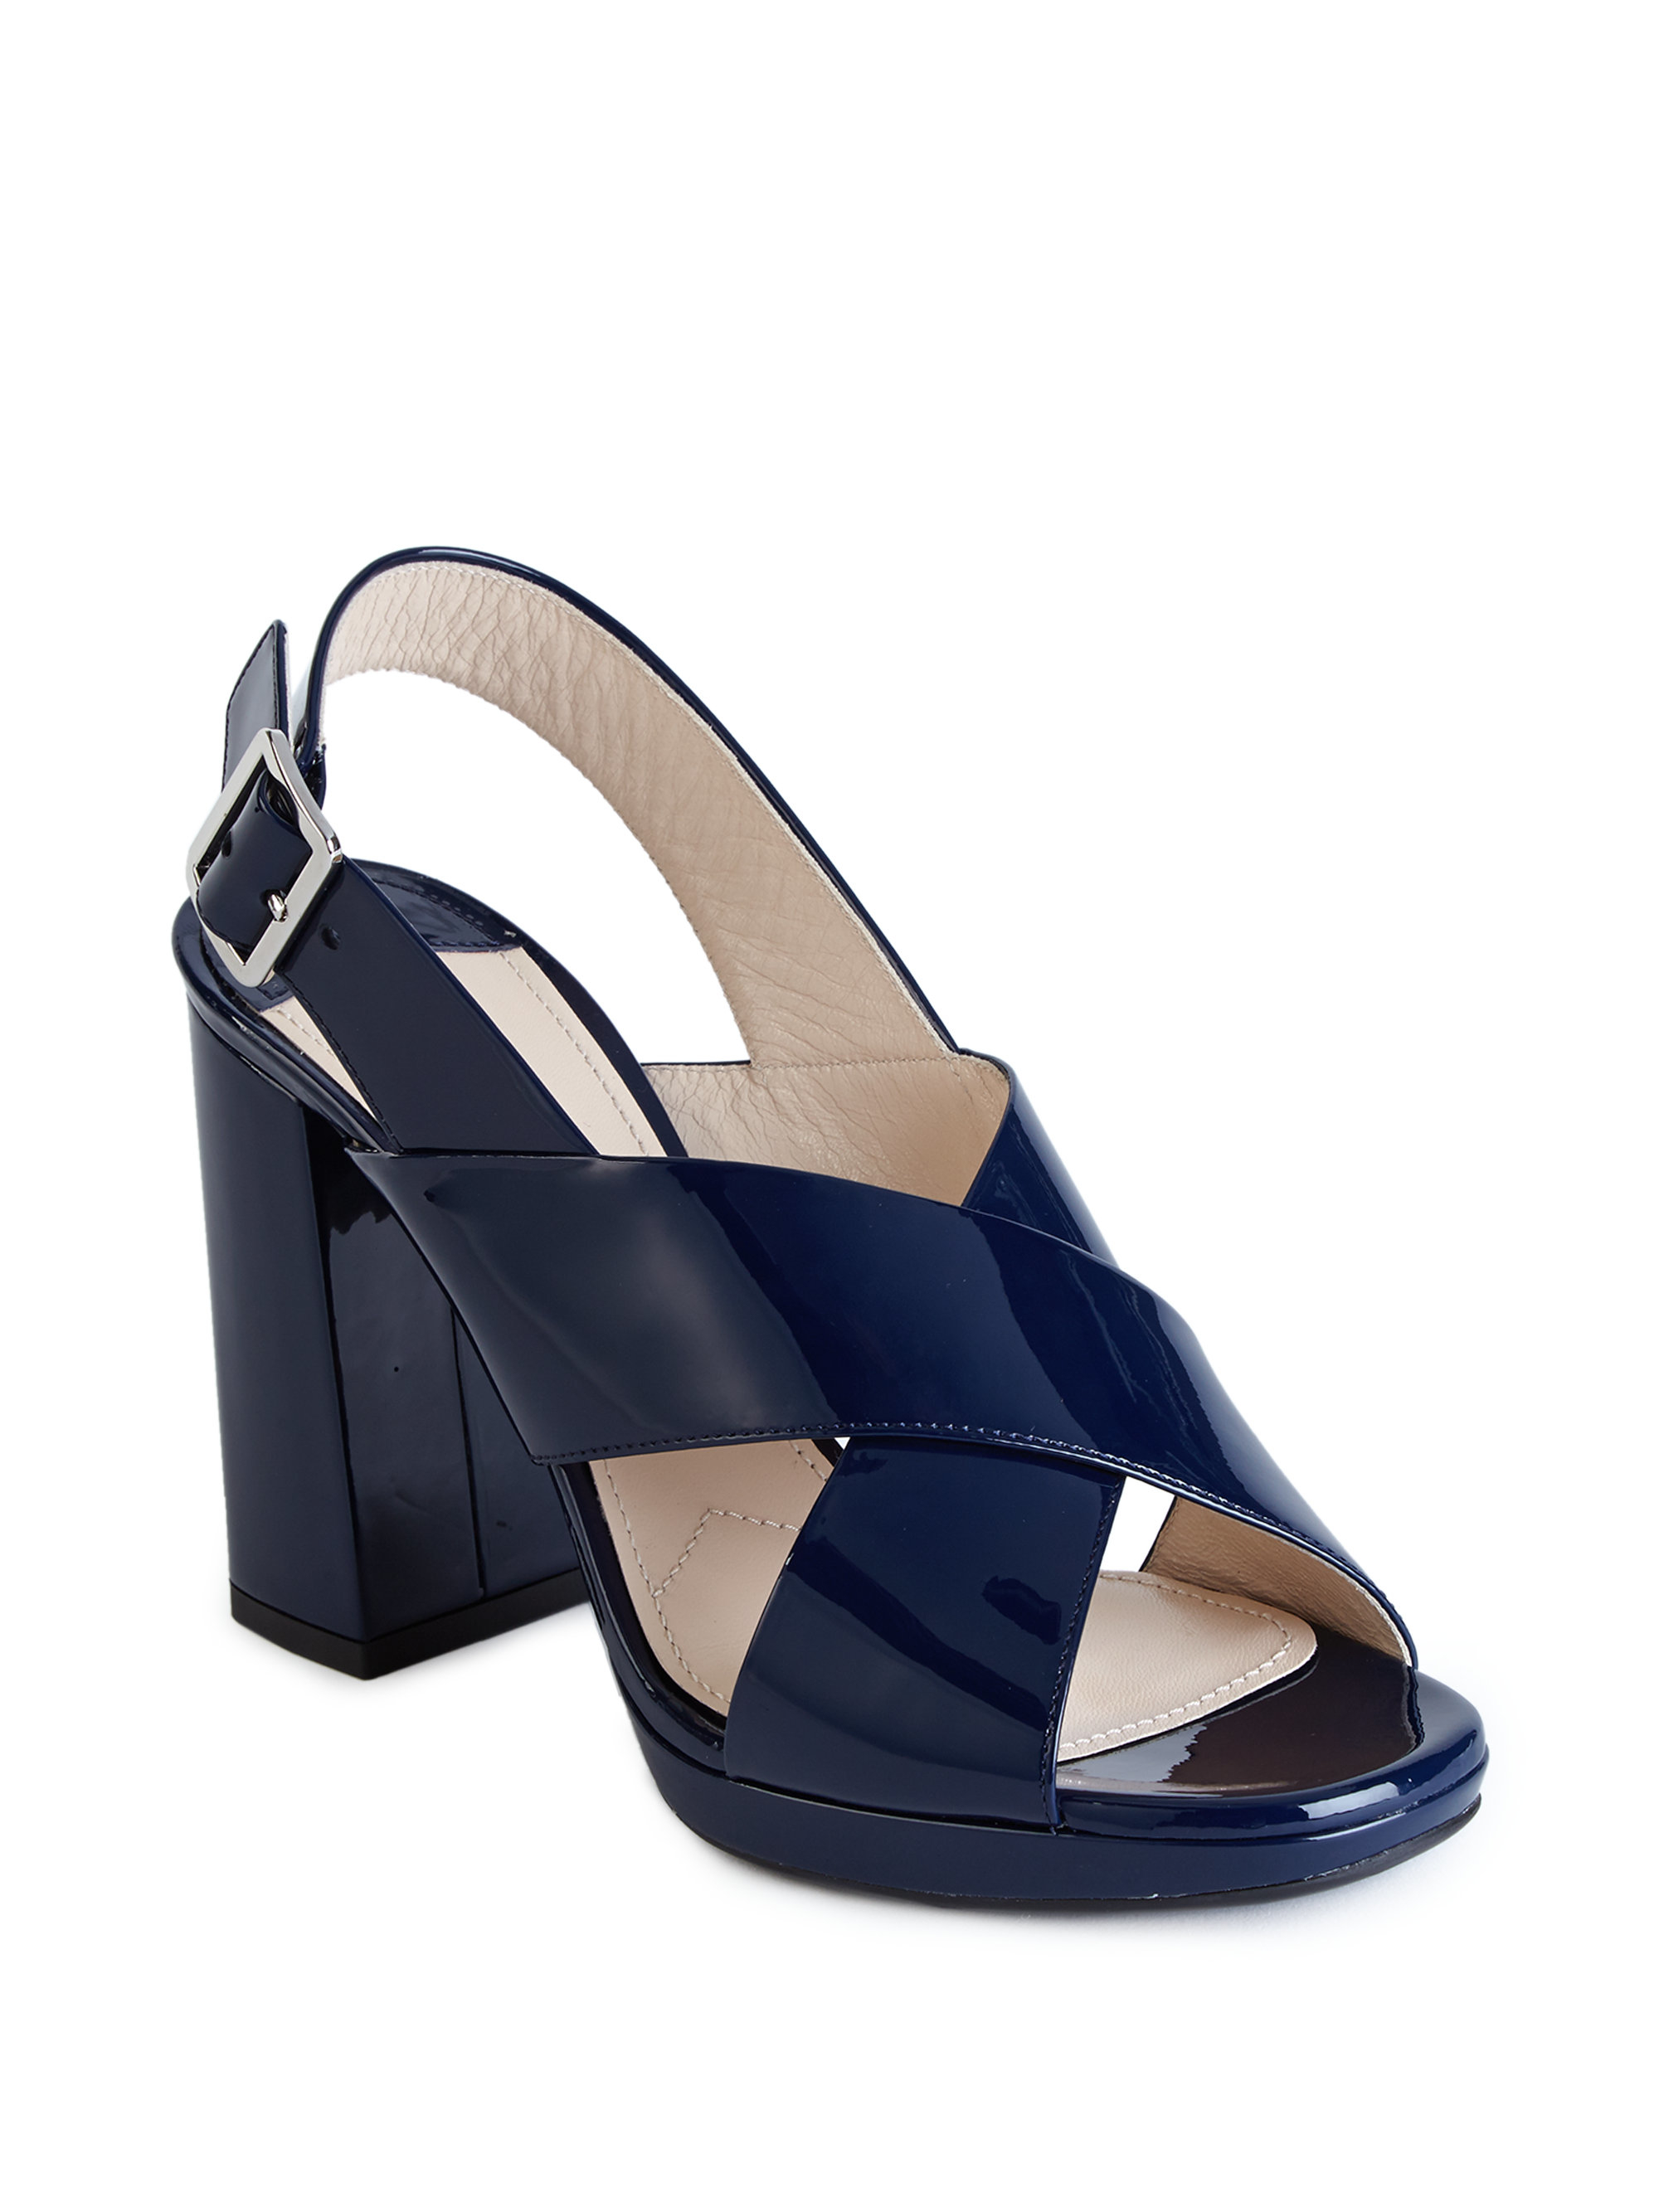 3d918bf212a Lyst - Prada Patent Leather Crisscross Block-heel Sandals in Blue